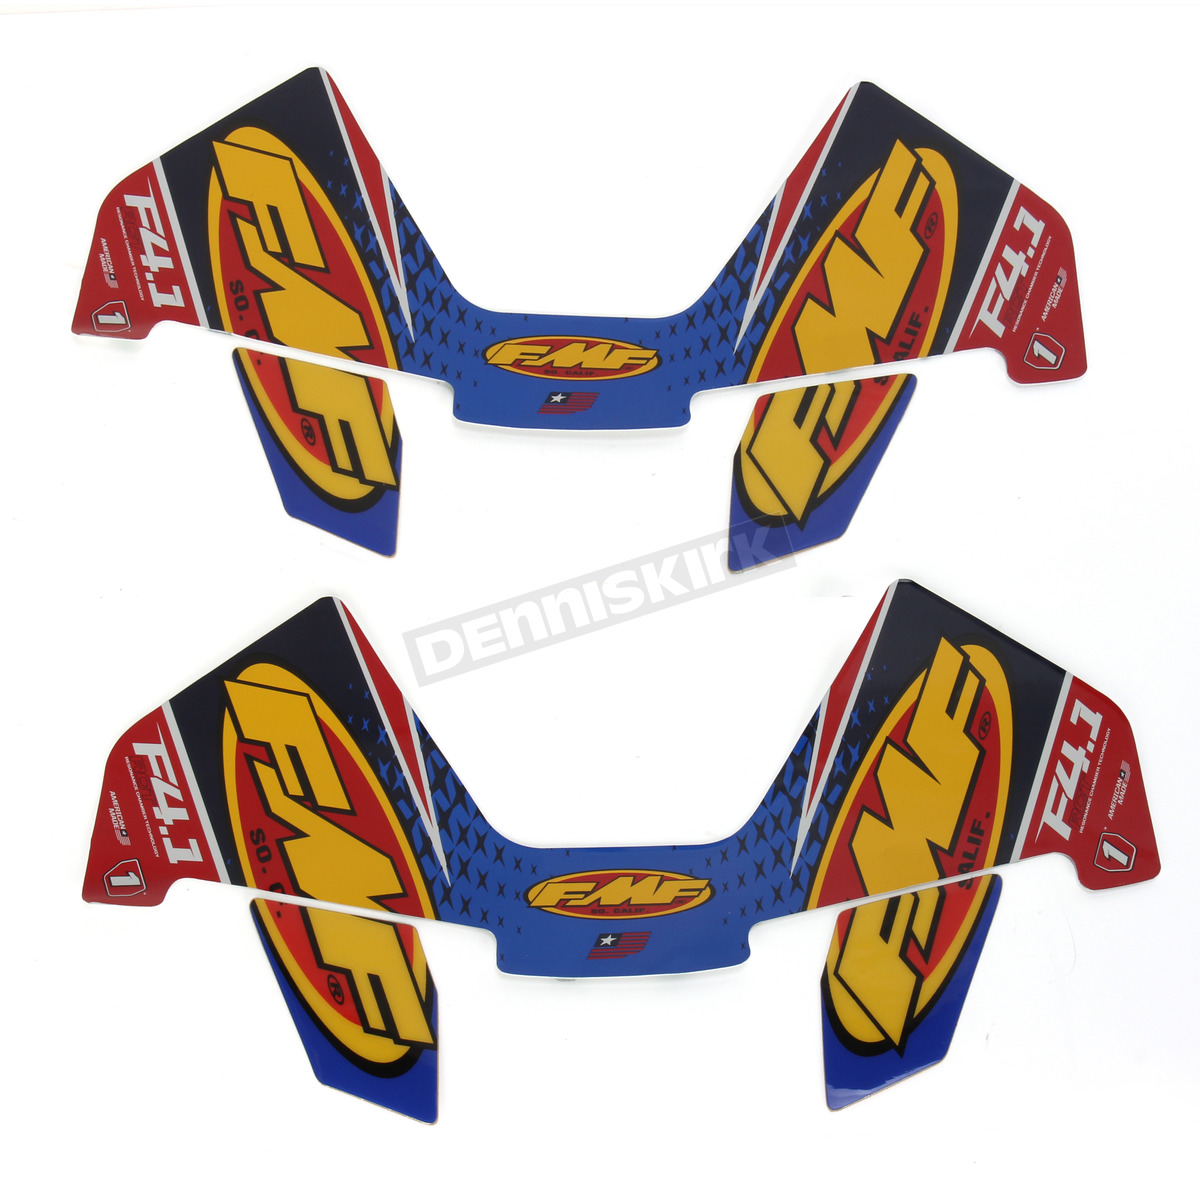 Factory 4 1 Replacement Decals For Honda CRF - 014817